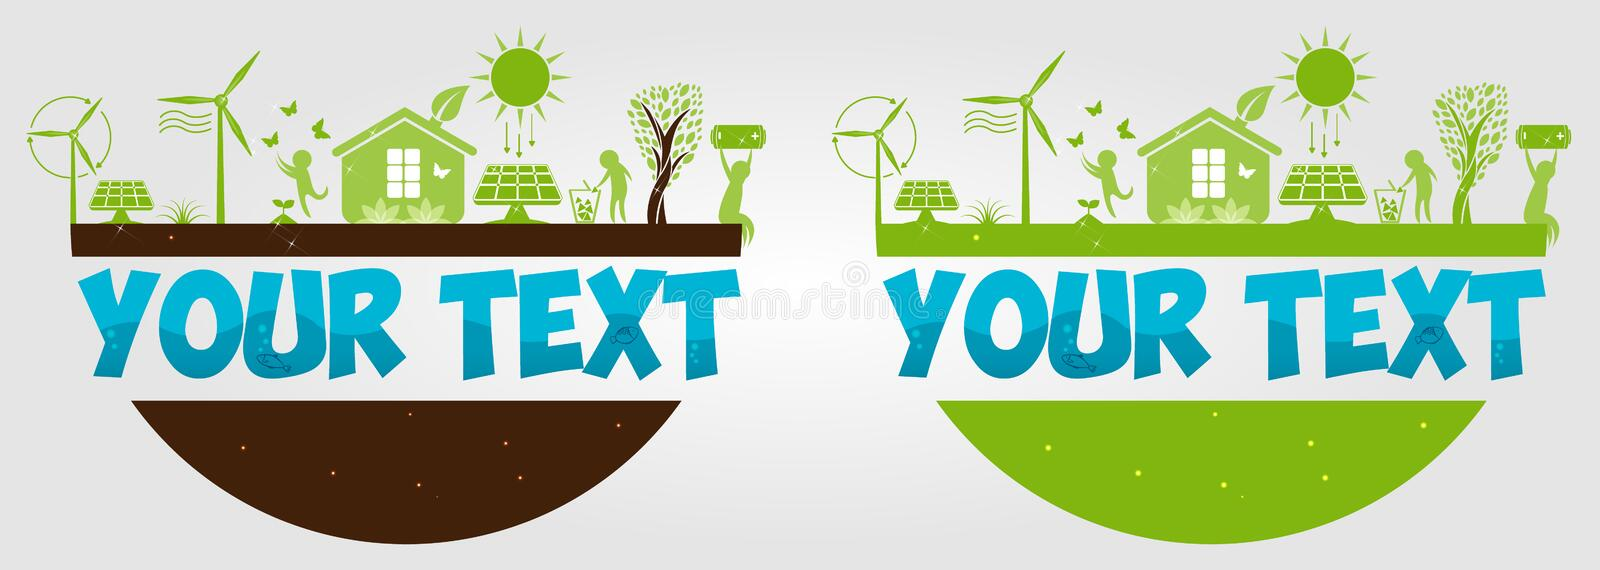 World environment day. Ecology. Creative. Eco-friendly concept ideas. Alternative sun energy. Eco power. Wind turbine. Wind mill. vector illustration